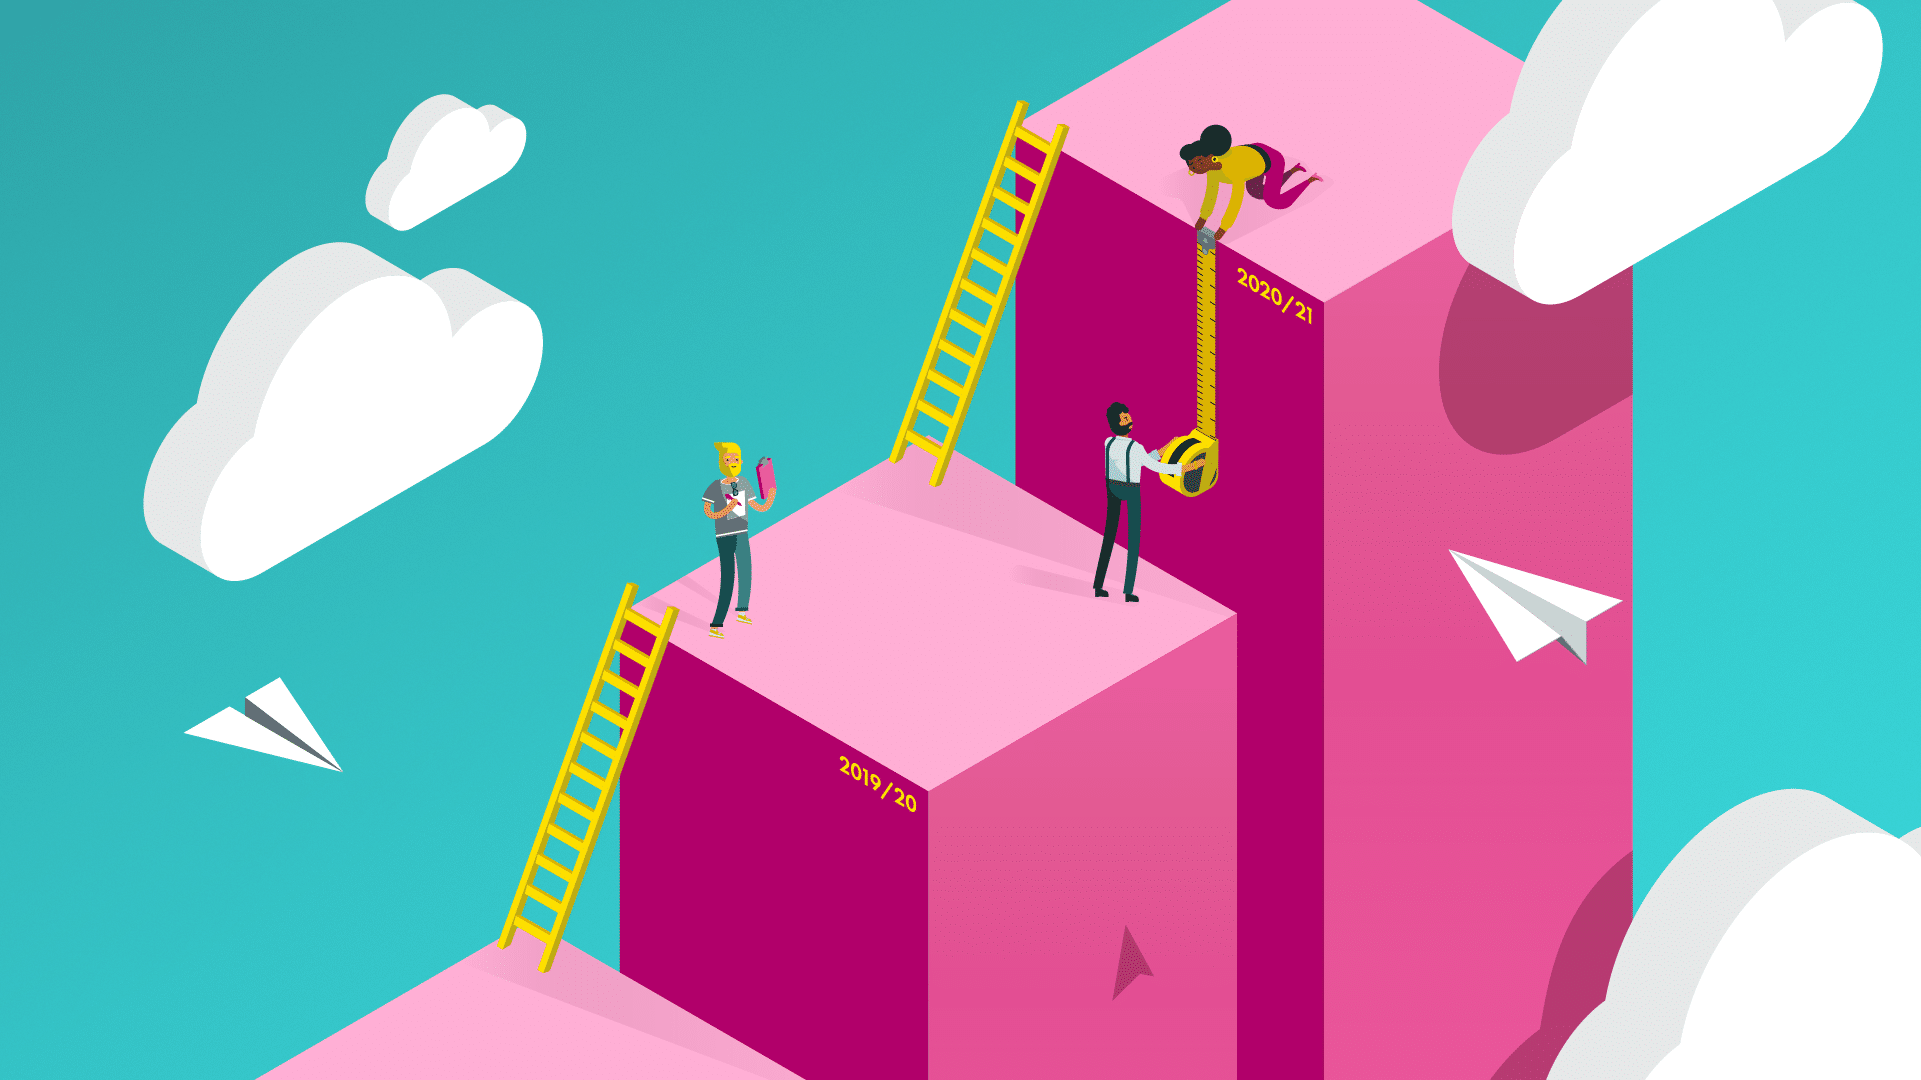 Branded content animation of people climbing ladders